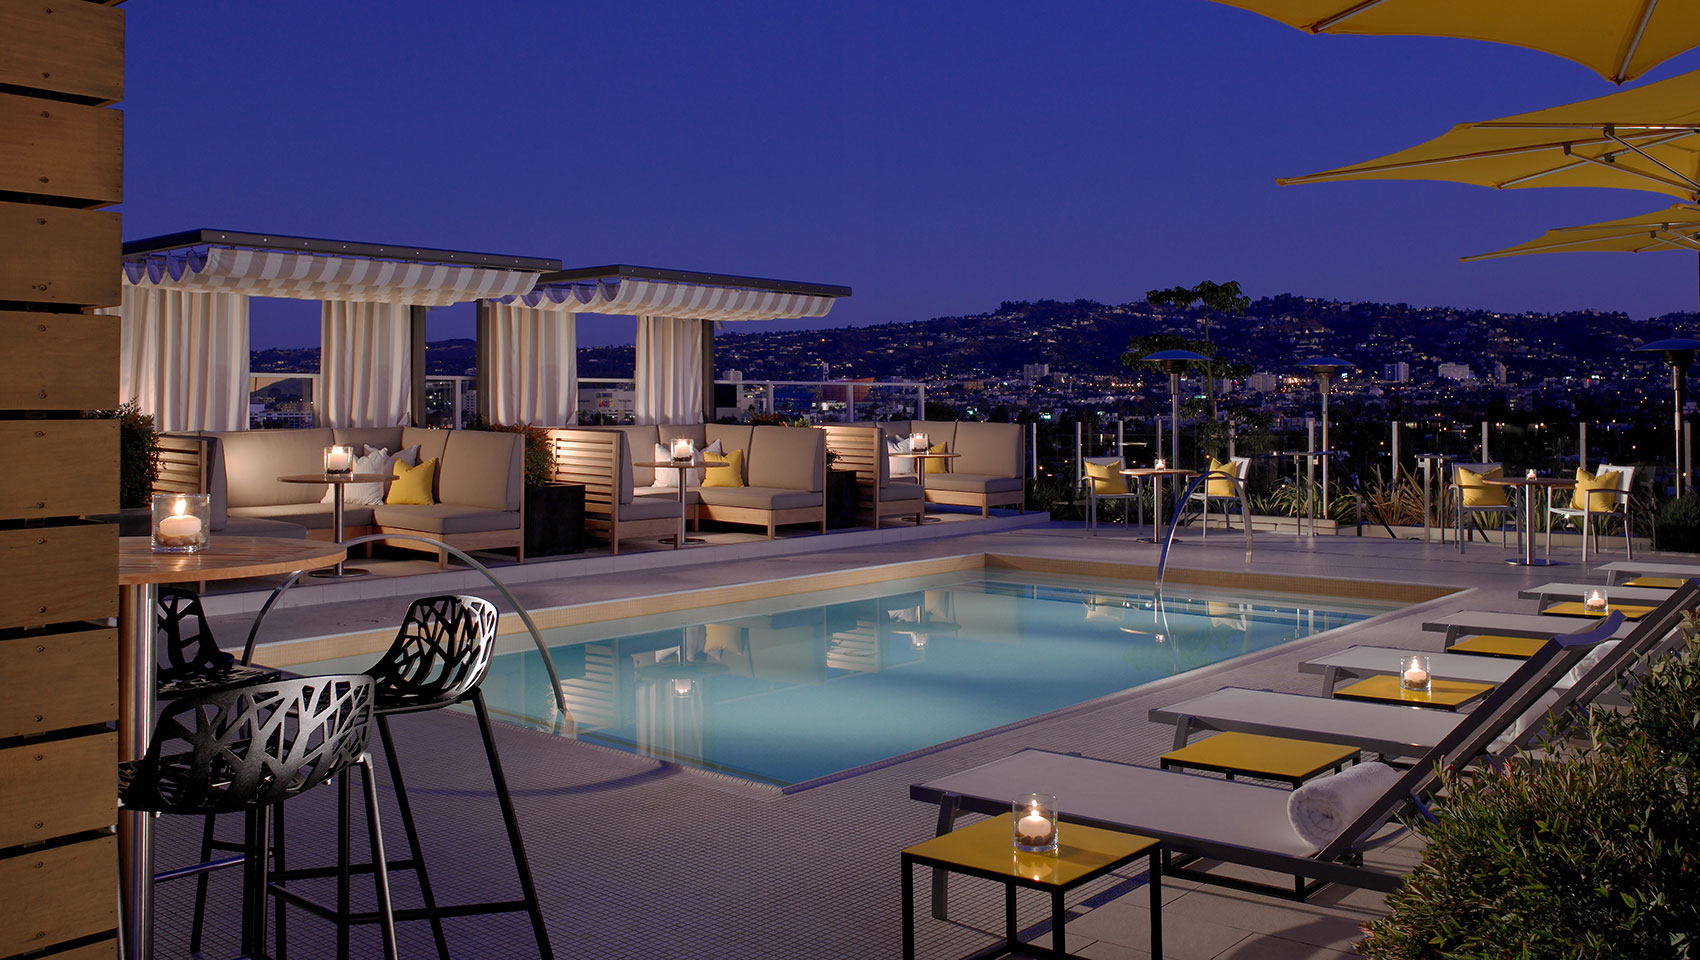 La Hotels With Rooftop Pools Kimpton Hotel Wilshire Los